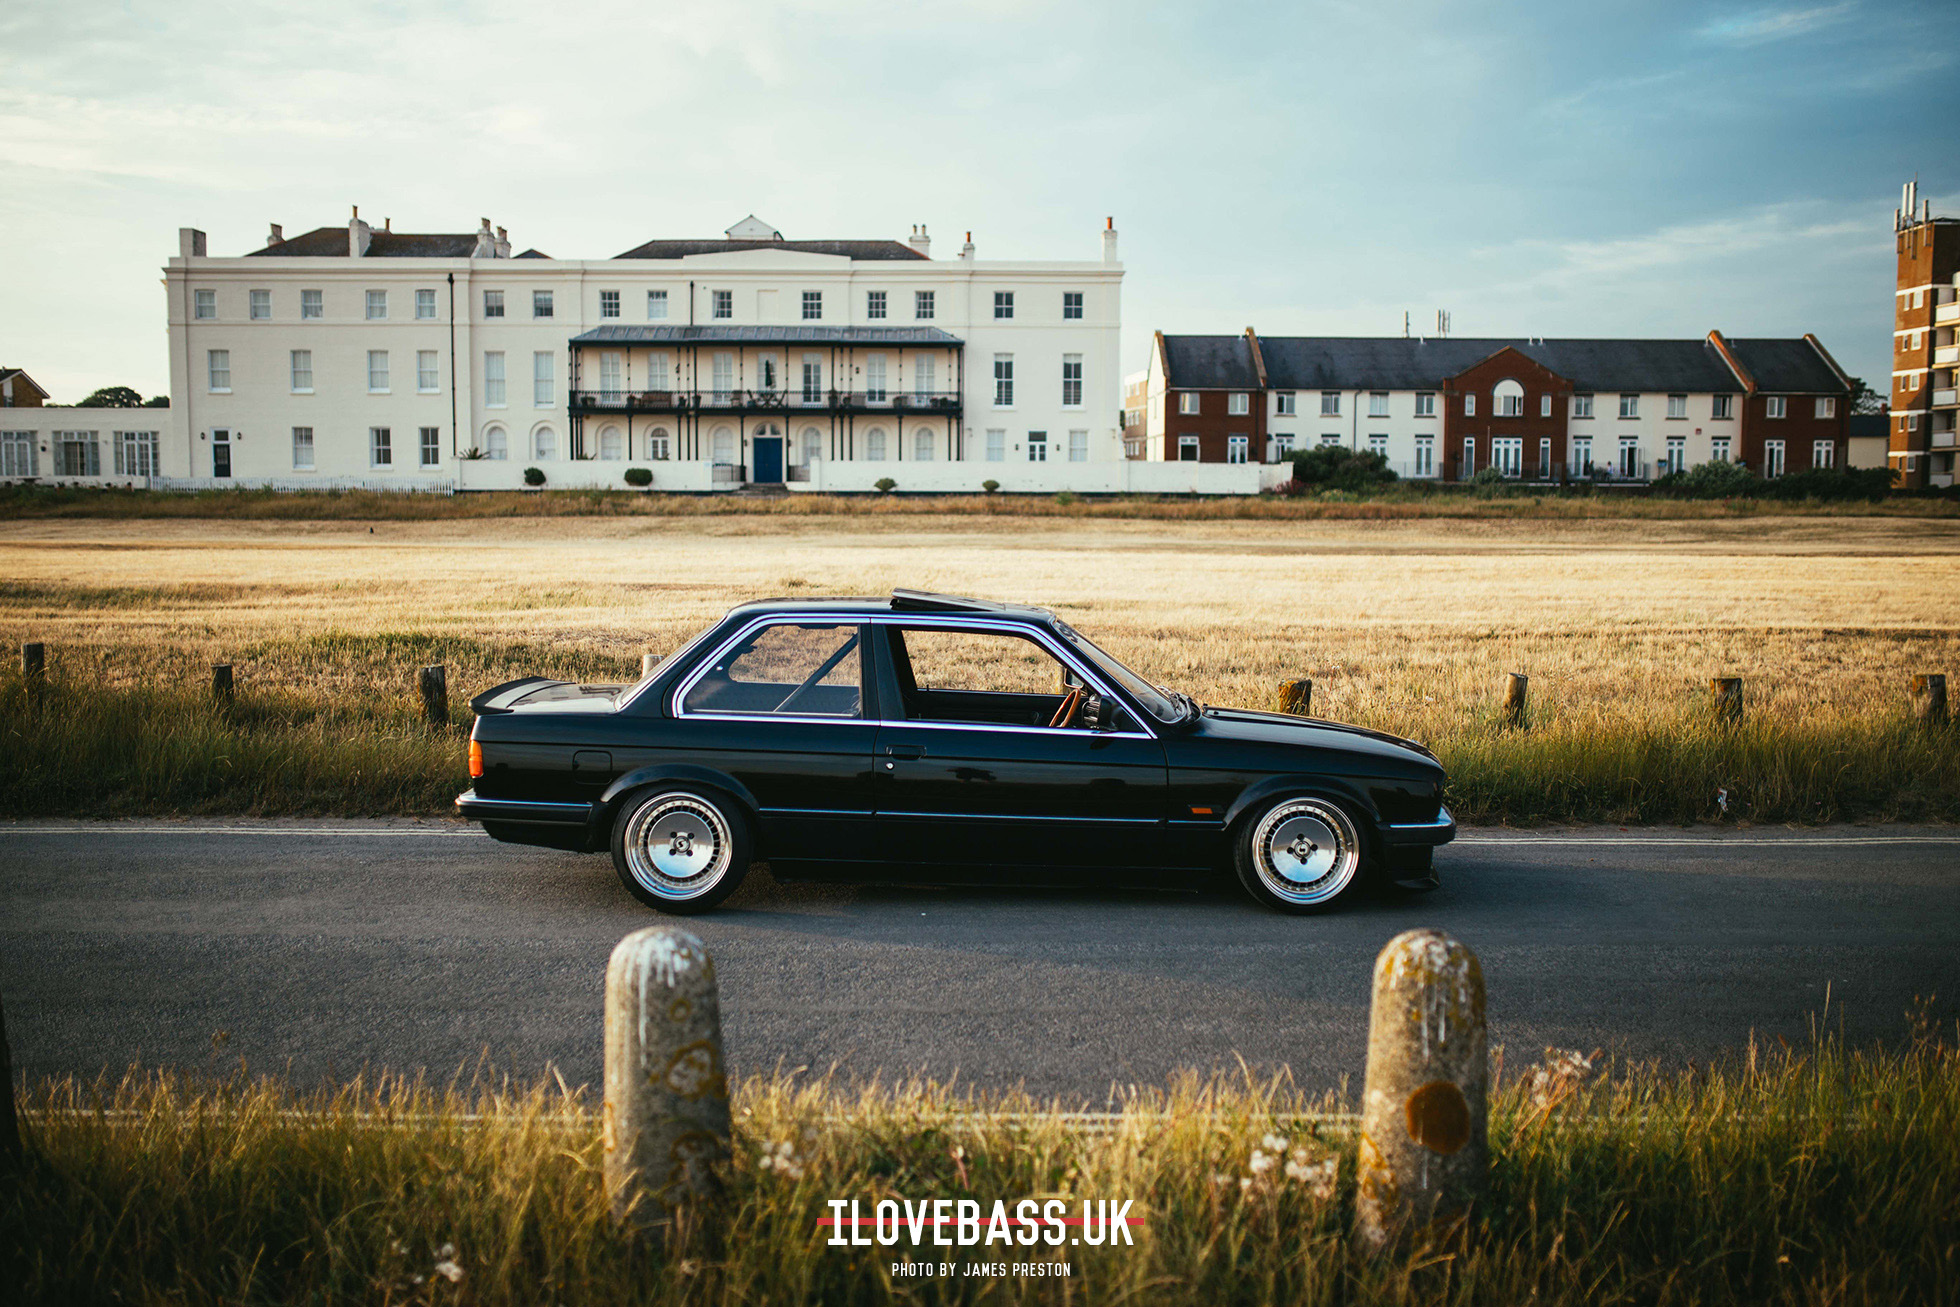 I Love Bass Steven Foxalls M50 Turbod E30 Bmw Swap Wire Harness The Engine Came From Stevens Friends Scrapyard In Manchester They Spent A Day Hopping Across Roofs To Lift Numerous Bonnets Of 90s Bmws But Were Sadly